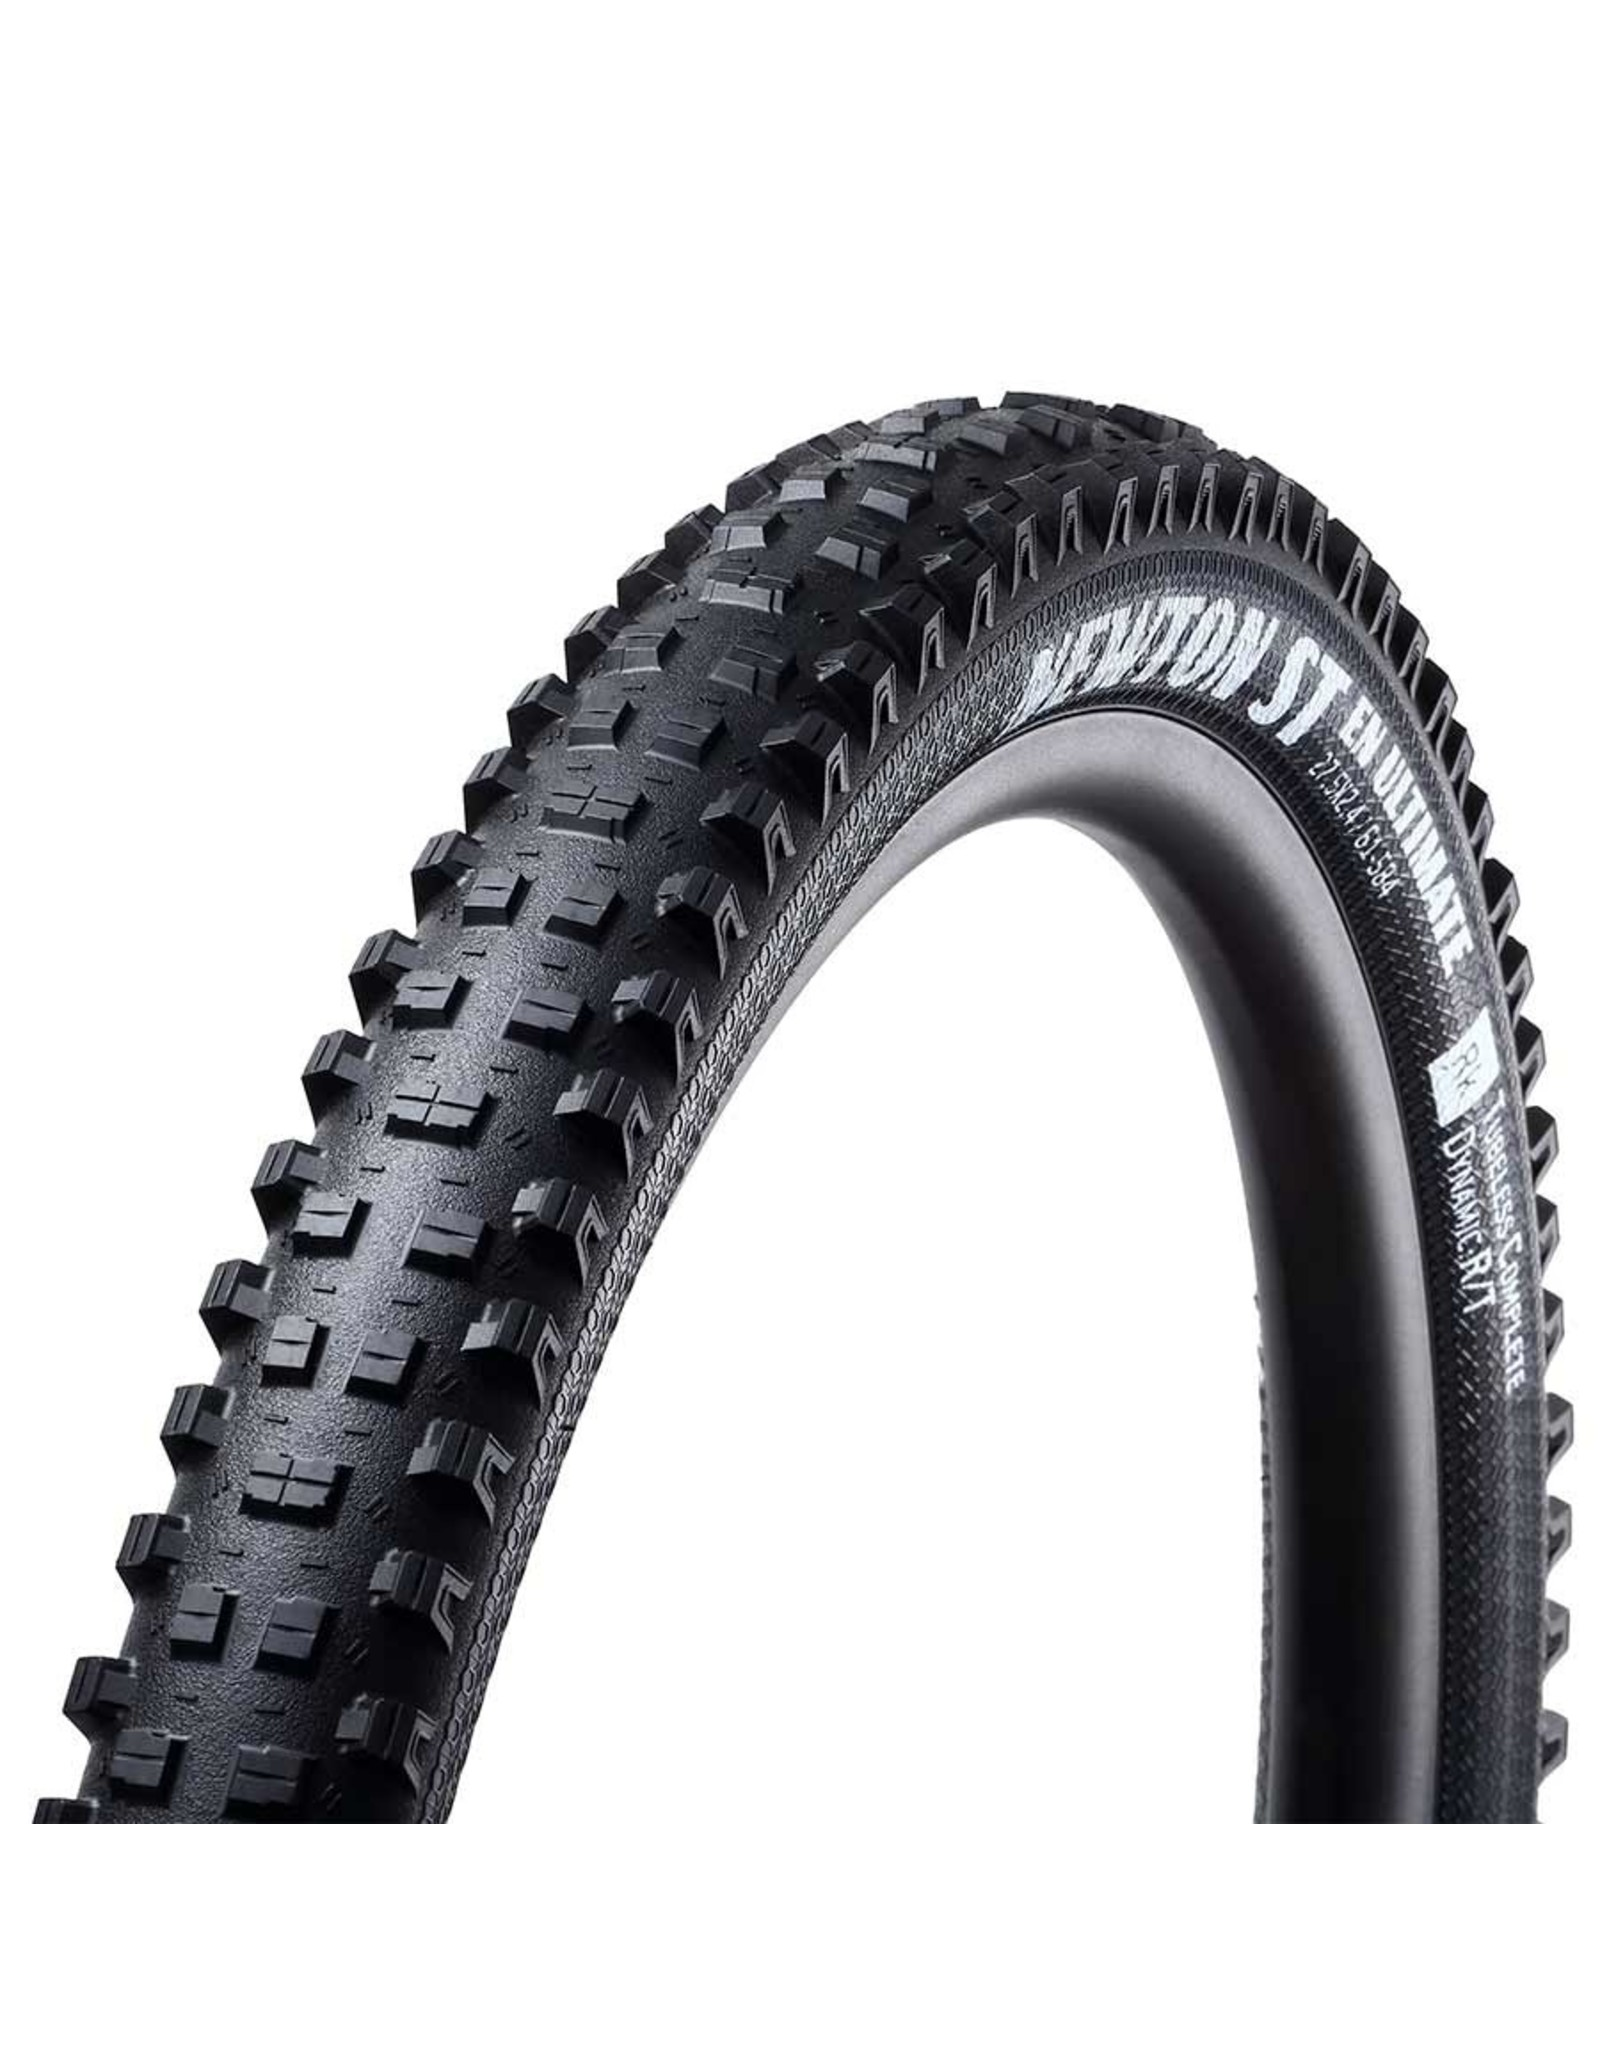 Goodyear, Newton-ST, Tire, 27.5''x2.60, Folding, Tubeless Ready, Dynamic:R/T, EN Ultimate, 240TPI, Black